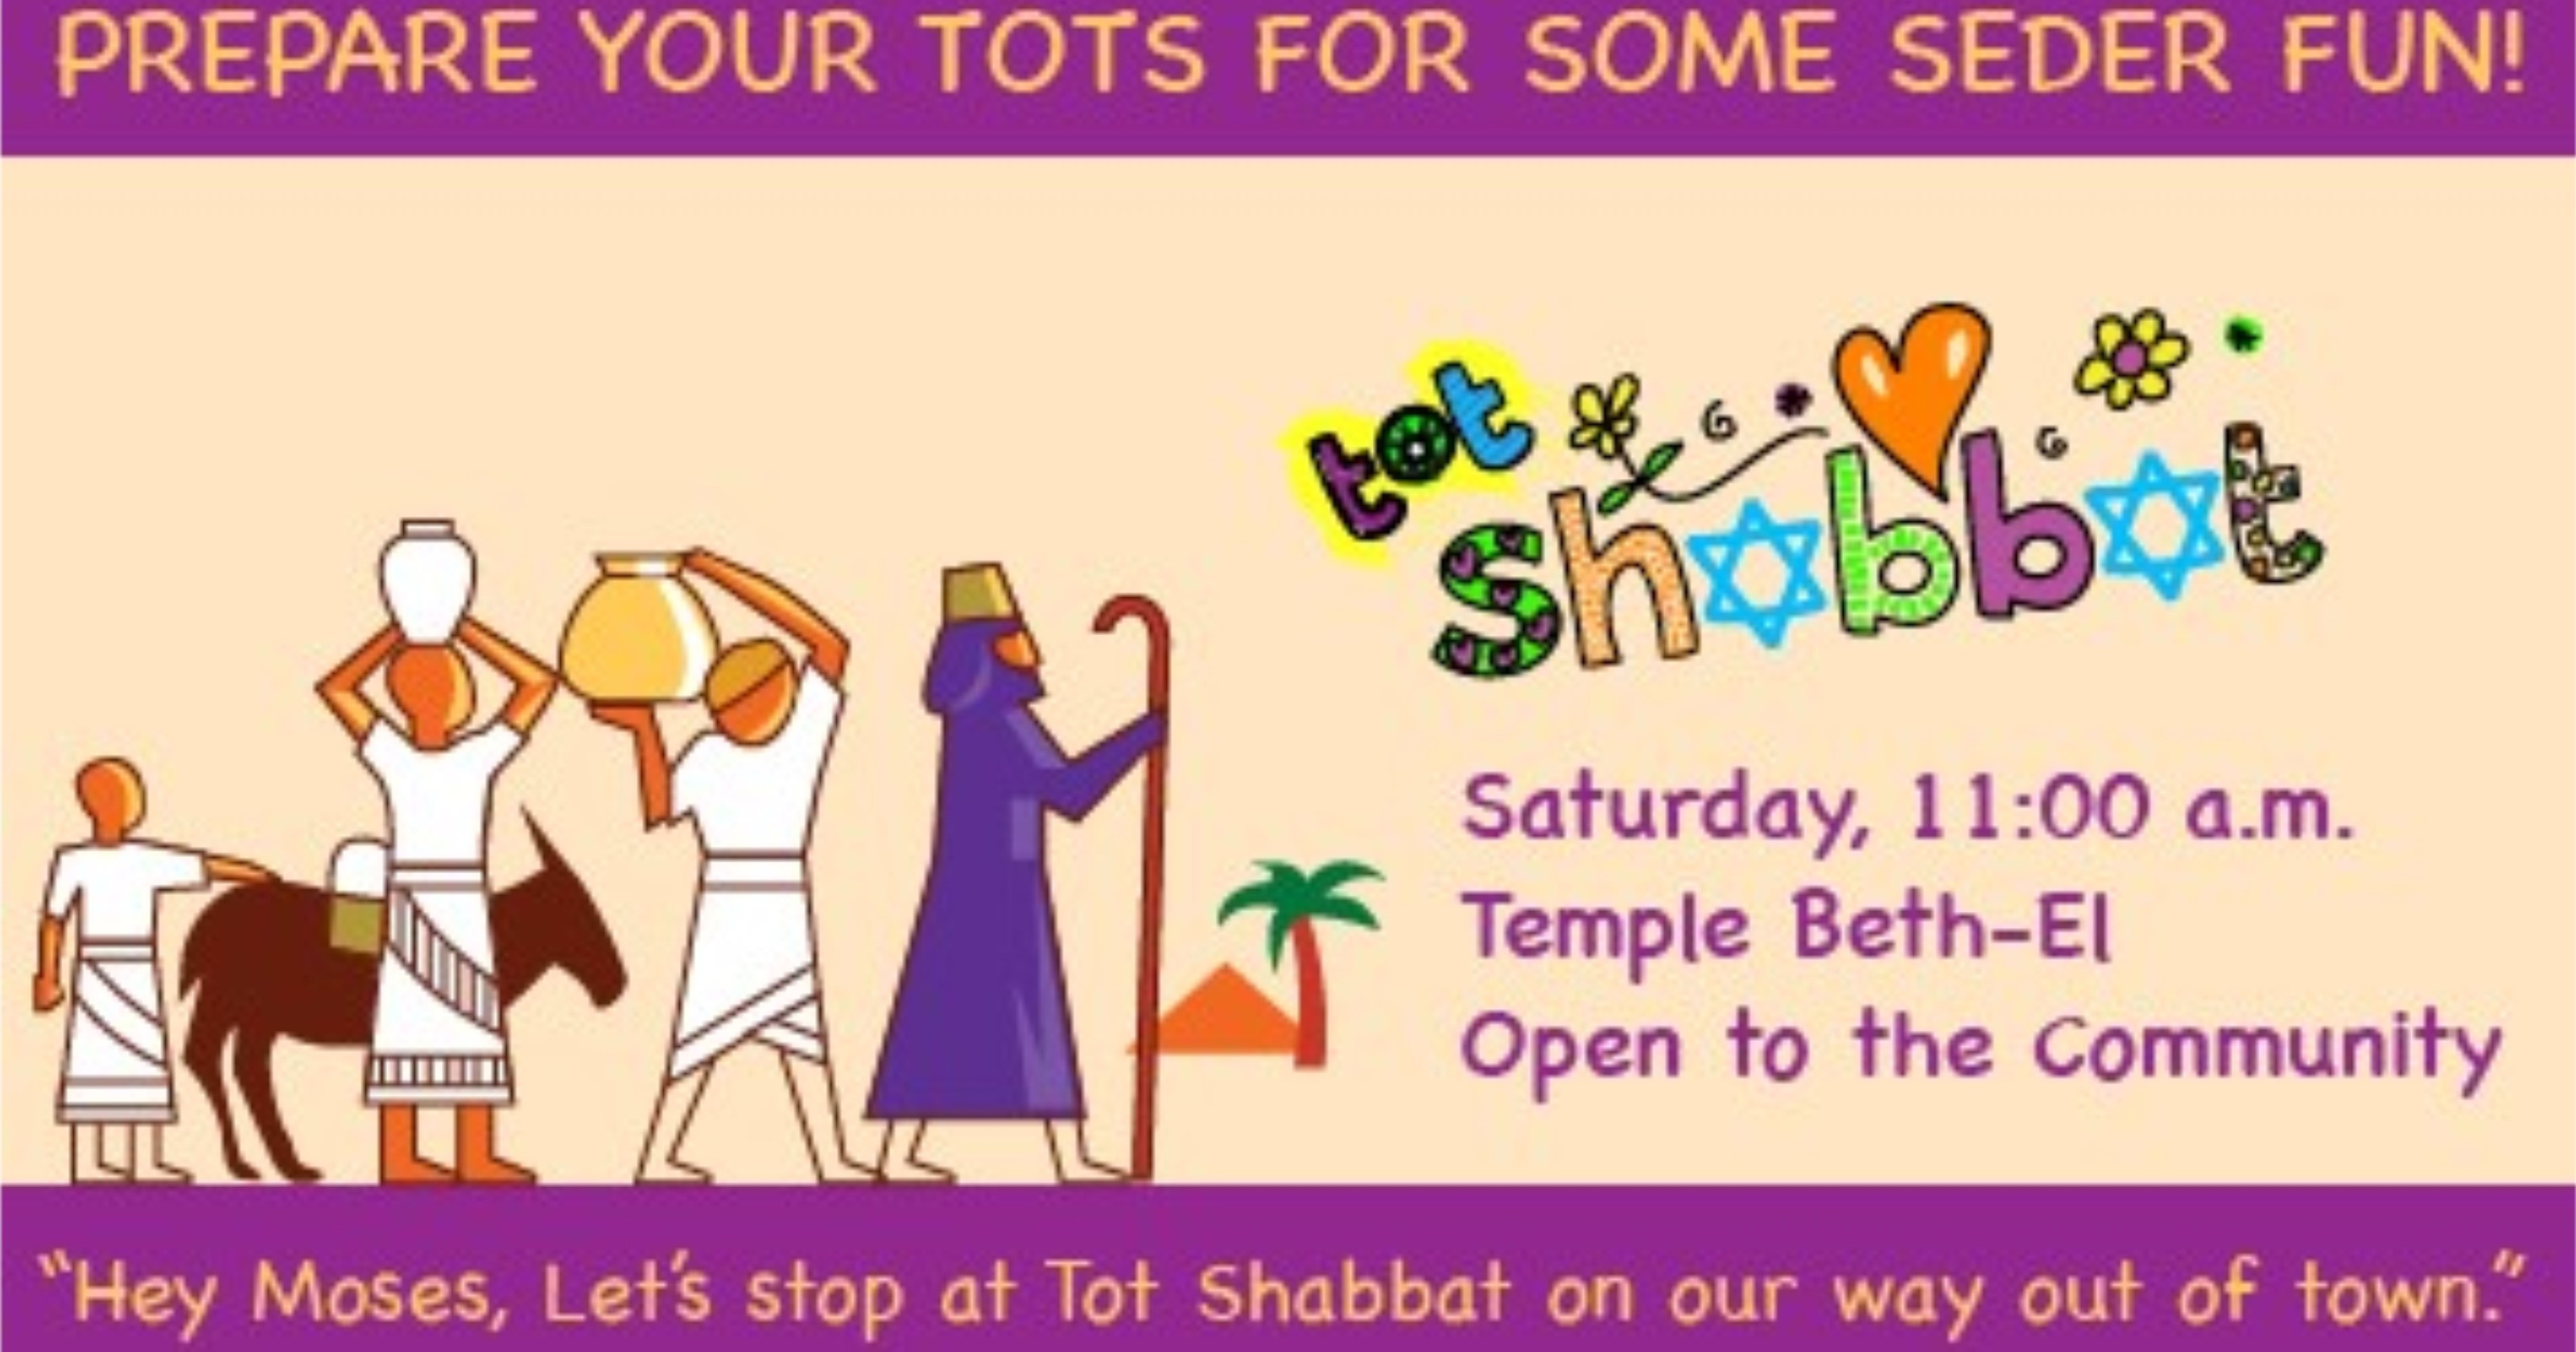 passover-tots